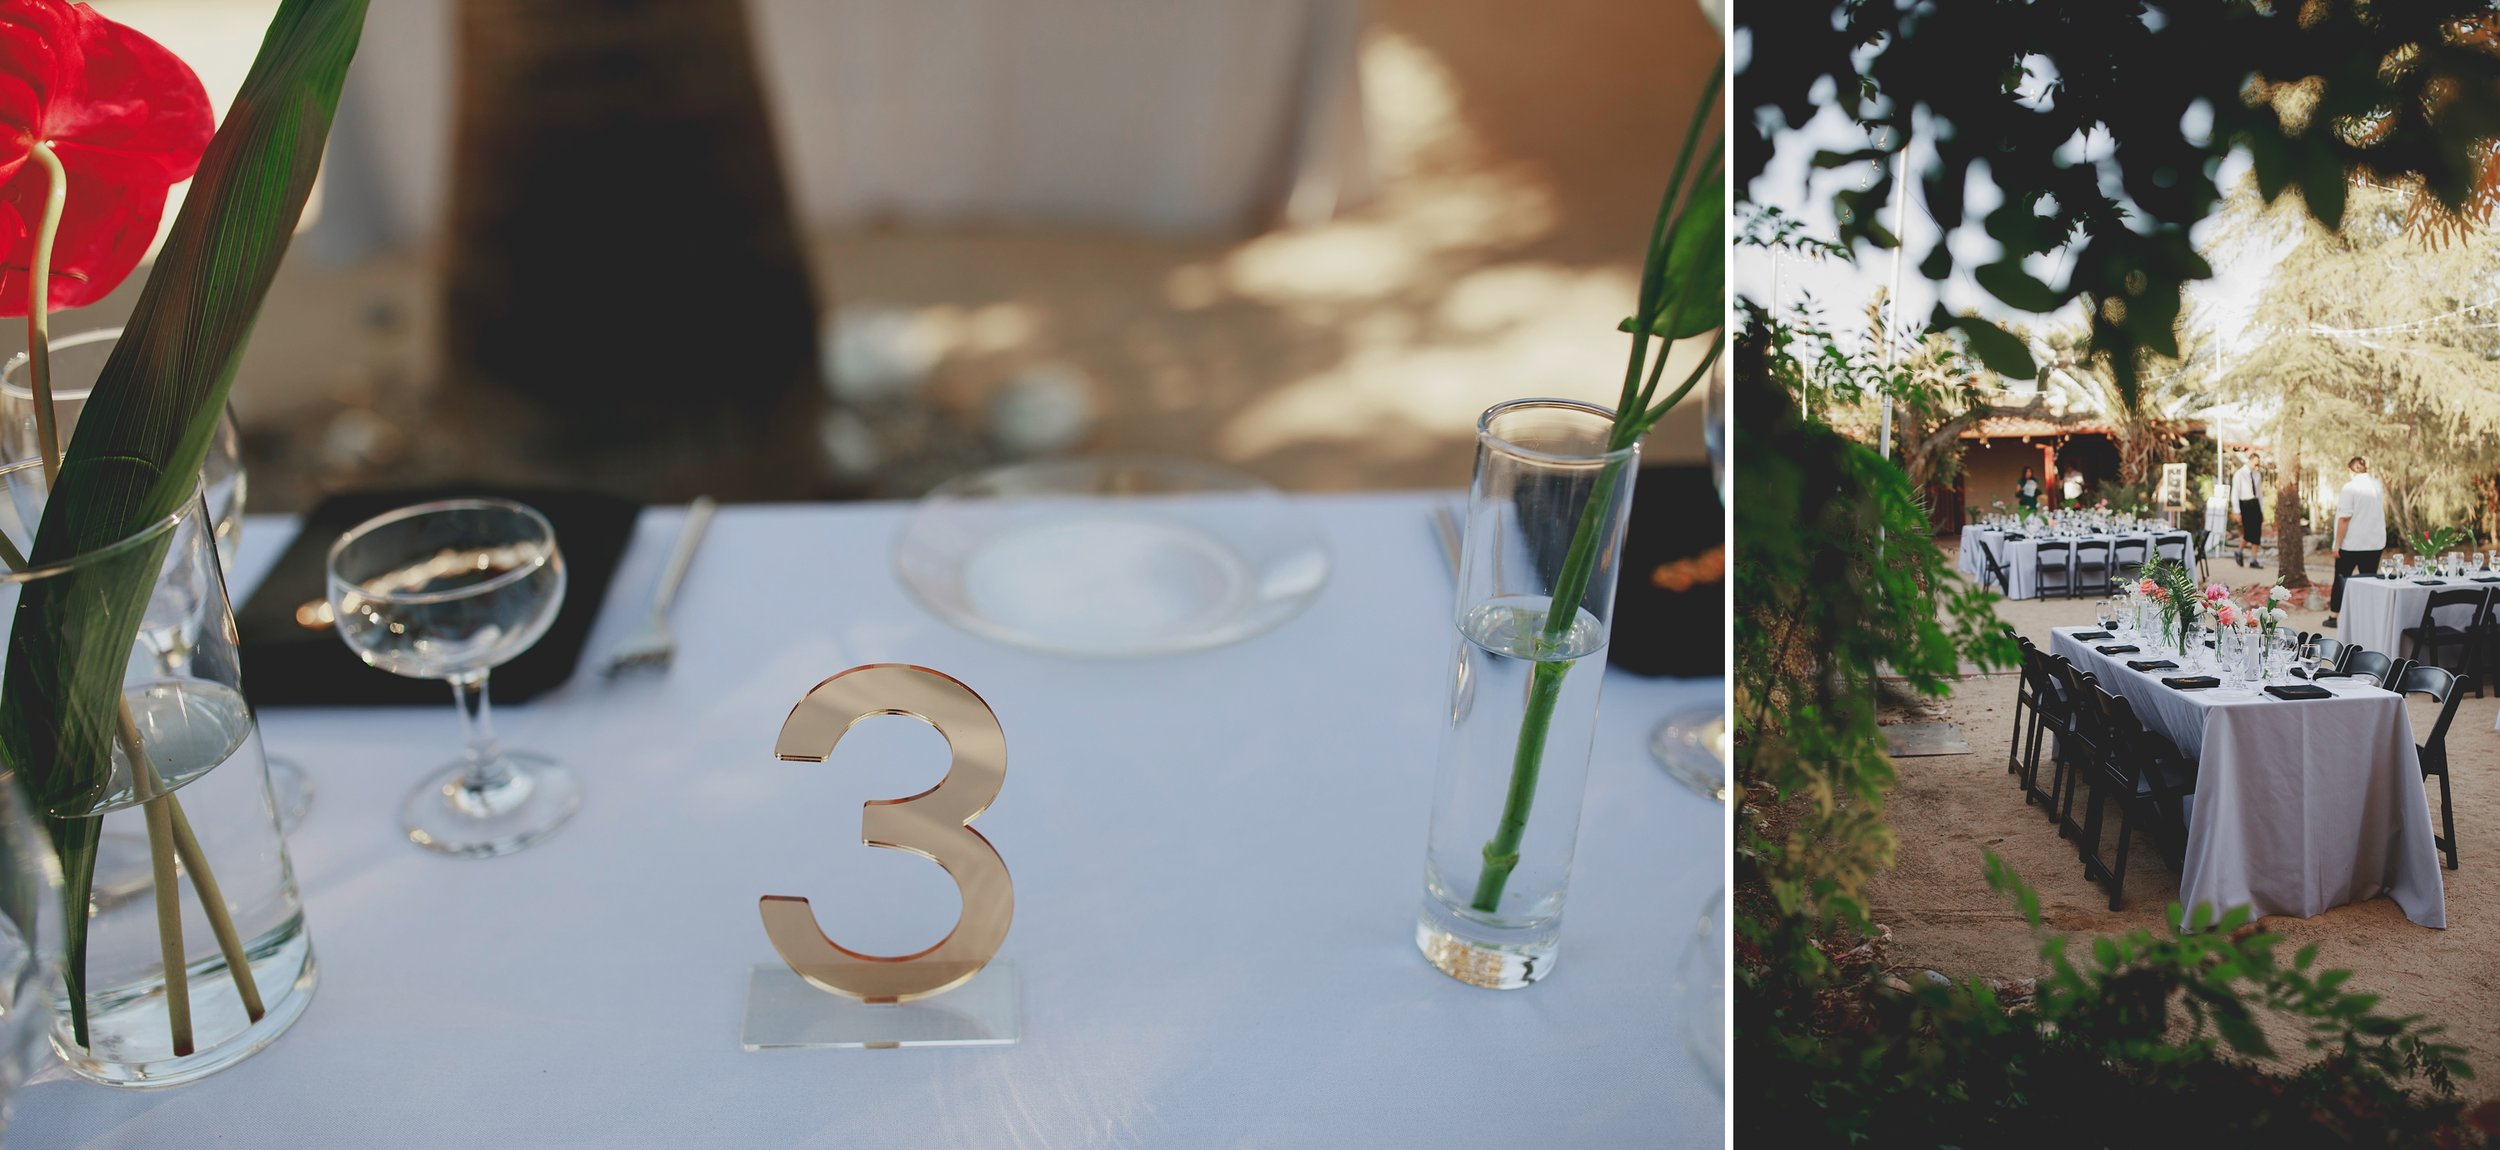 amanda_vanvels_joshua_tree_inn_wedding_111.jpg